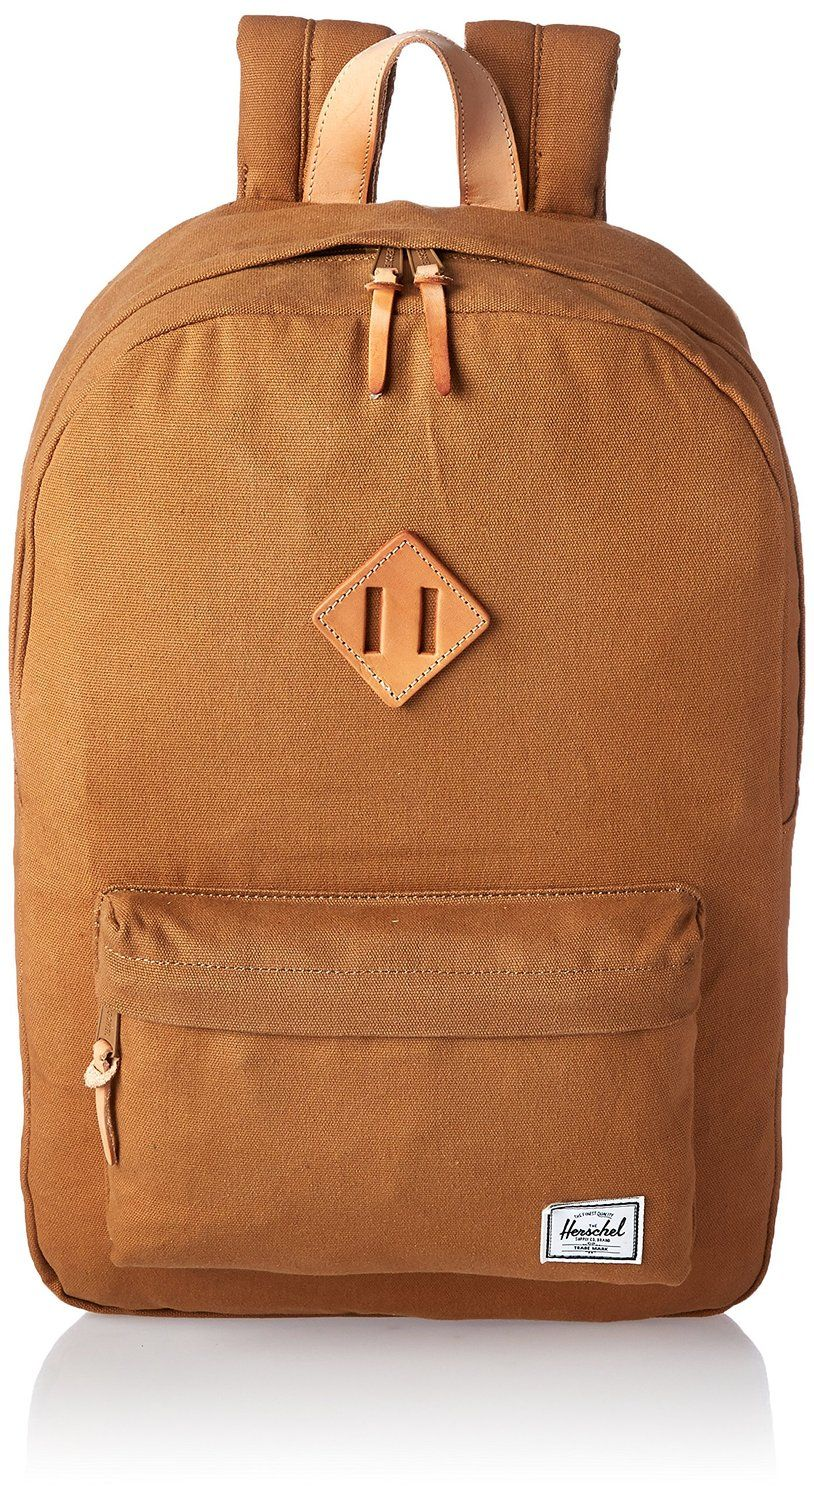 90413176b38 Amazon.com  Herschel Supply Co. Heritage Select Backpack, Caramel, One Size   Clothing